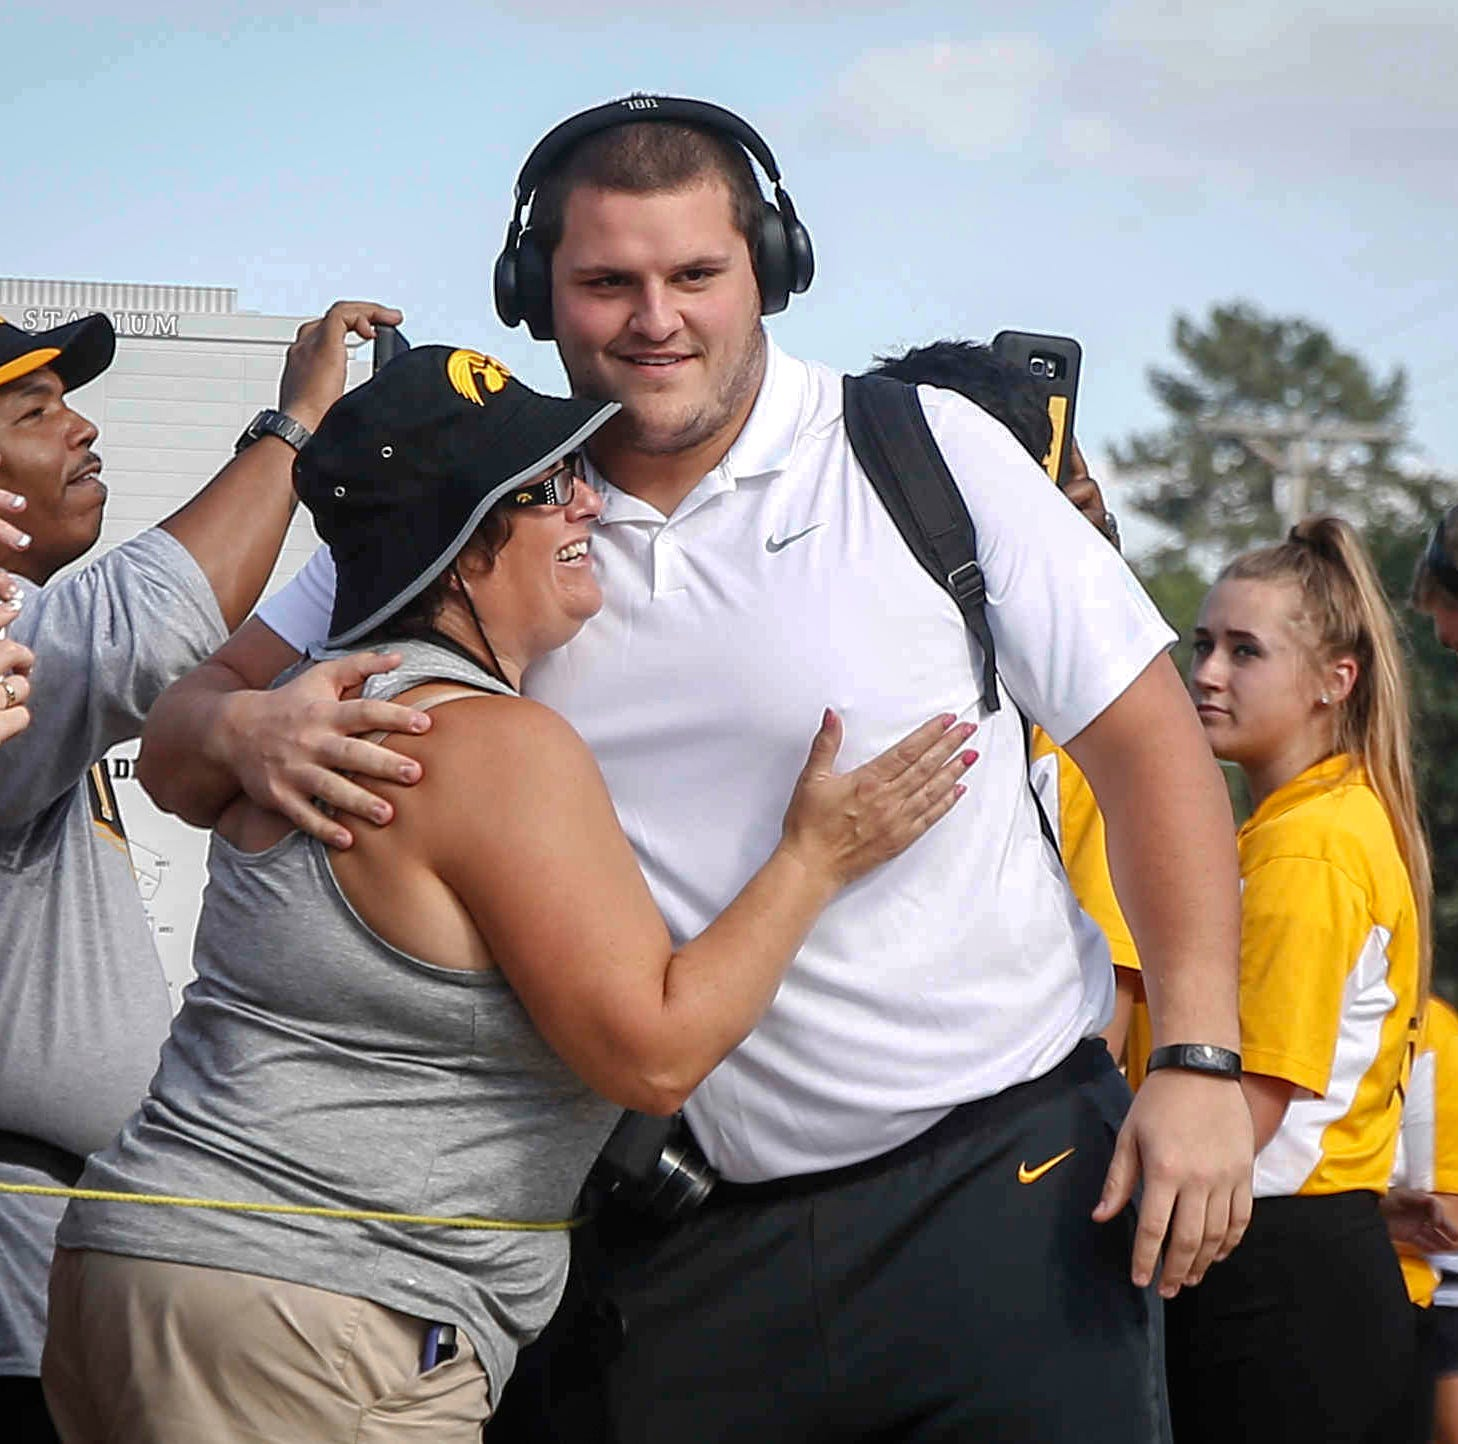 'A little surreal': One of Iowa's most respected leaders, Keegan Render on final leg of Hawkeye journey